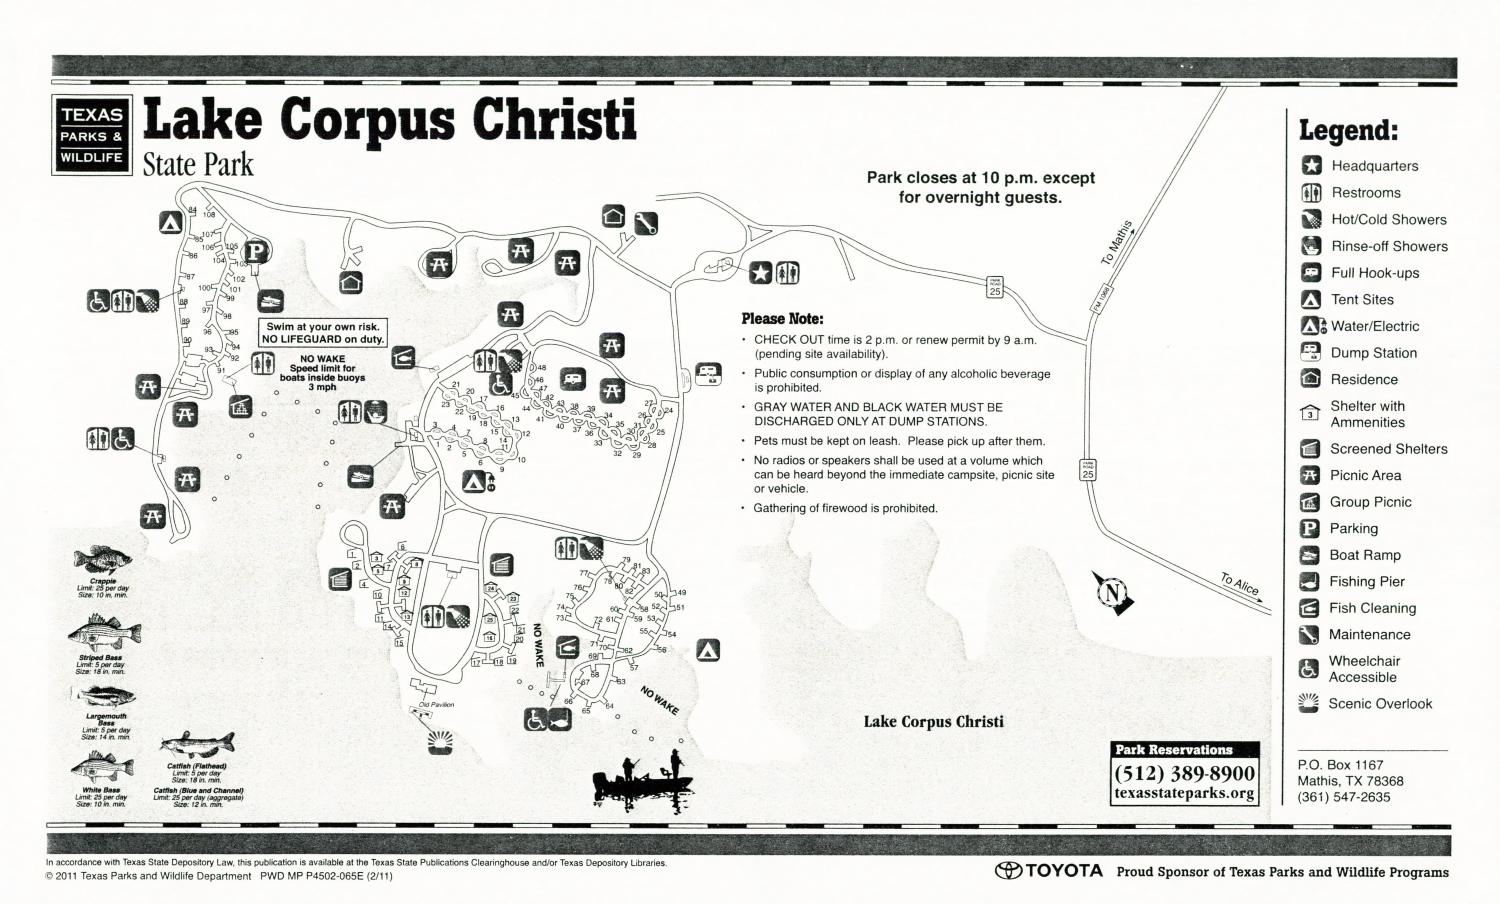 Lake Corpus Christi State Park, Map of the Lake Corpus Christi State Park outlining hiking trails and highlighting activities, facilities, and other features such as bathrooms, lodgings, water/electric, etc. It also contains general information for the park and for the Texas Parks and Wildlife Department.,